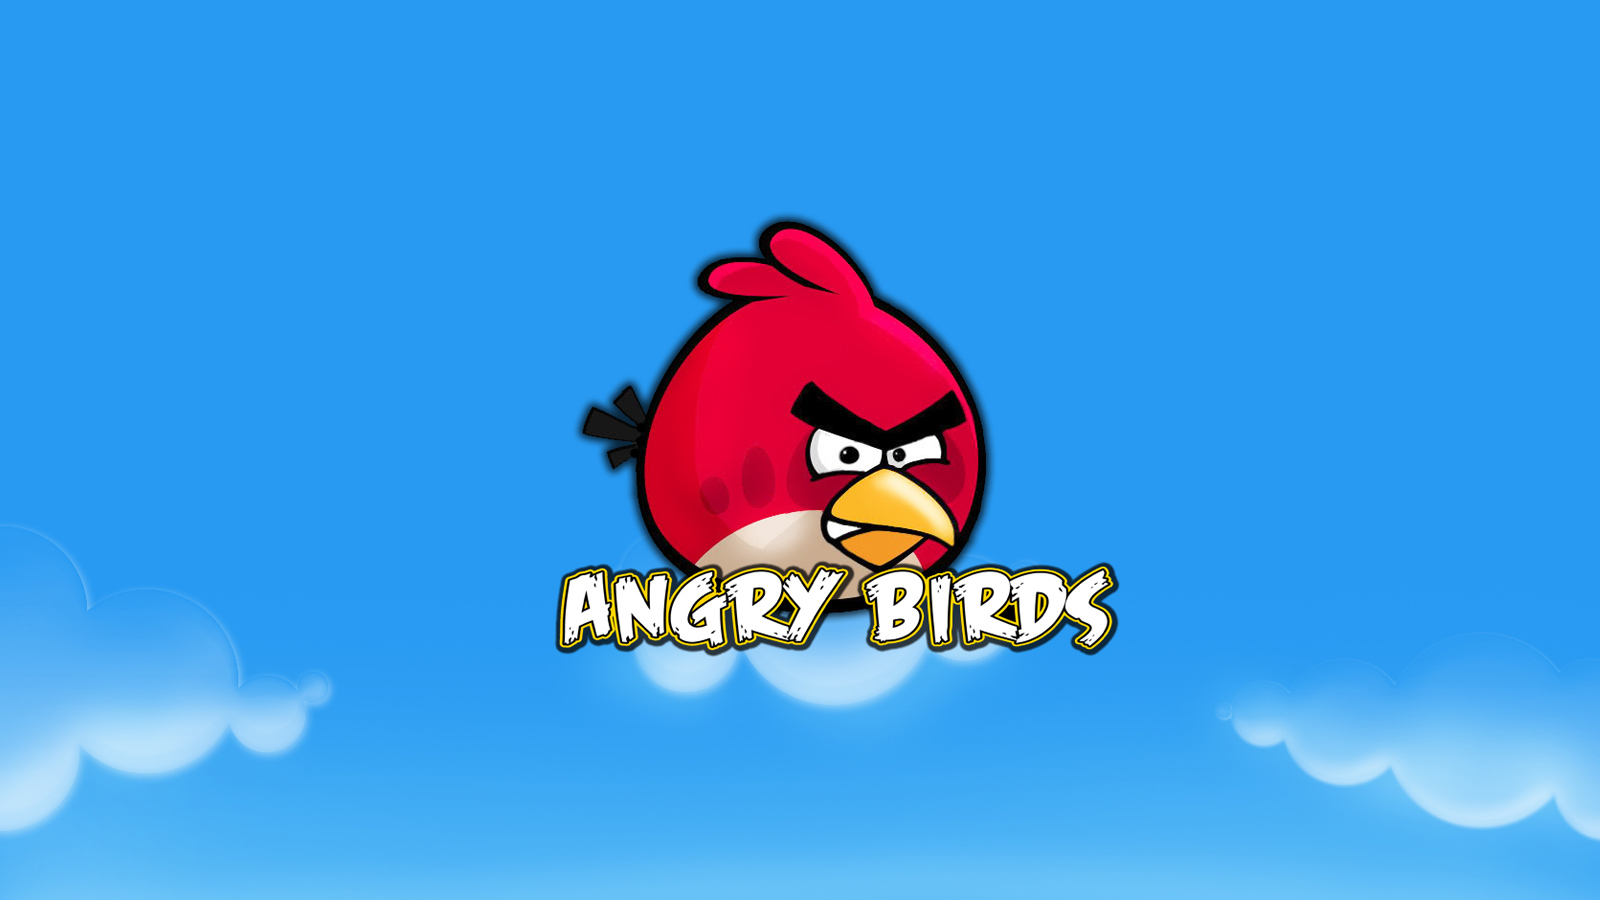 Angry Birds: 30 Awesome Angry Birds Resources